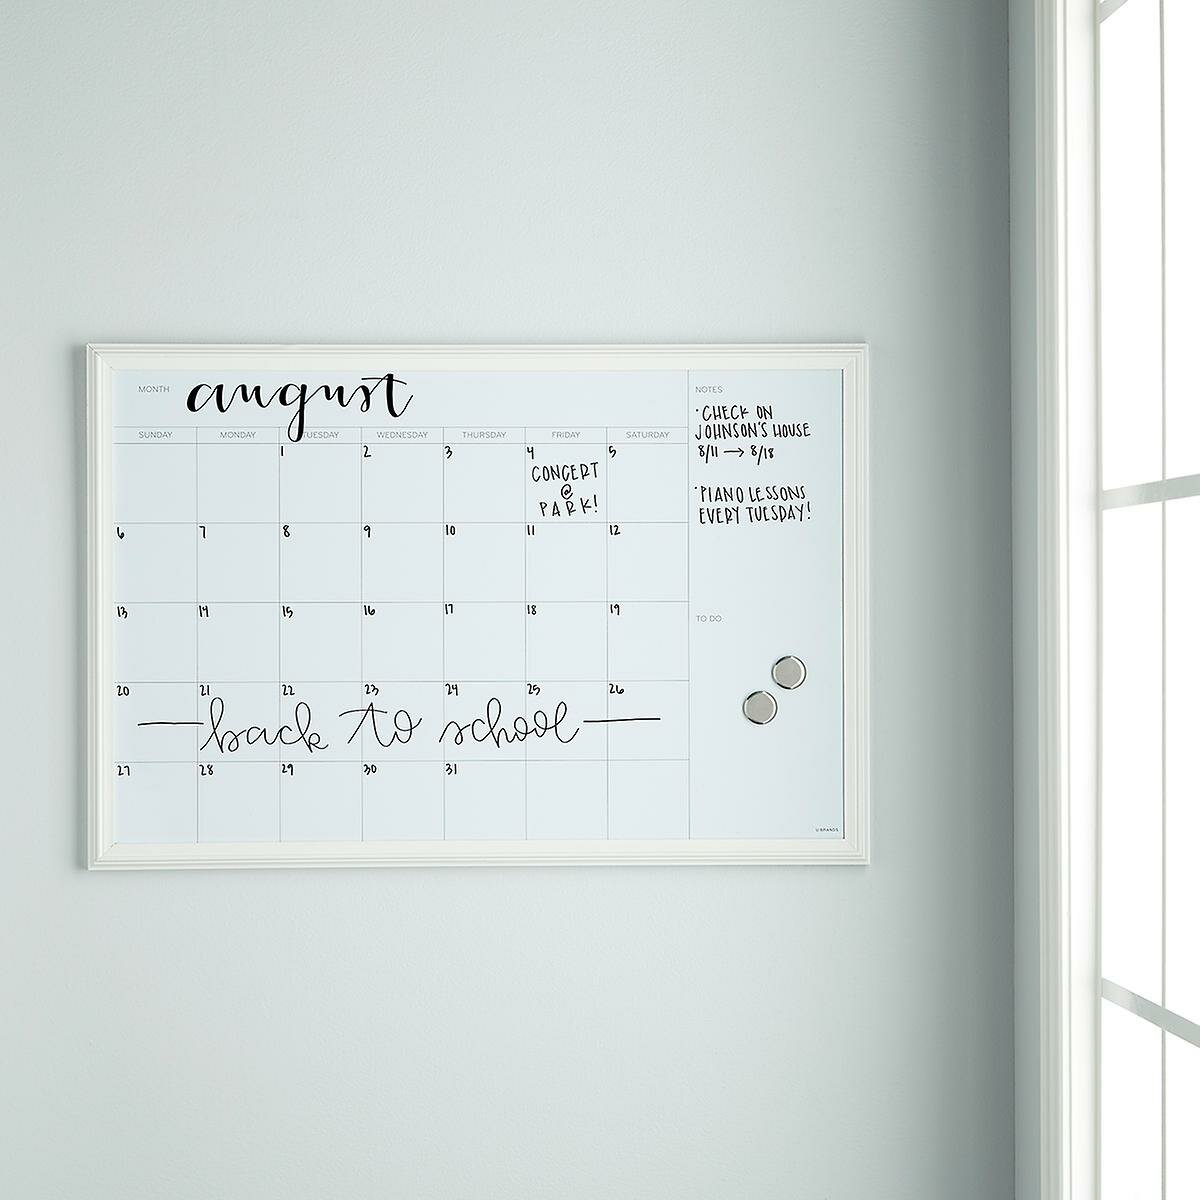 Symple Stuff Magnetic Calendar Planner Whiteboard 30 X 20 Reviews Wayfair